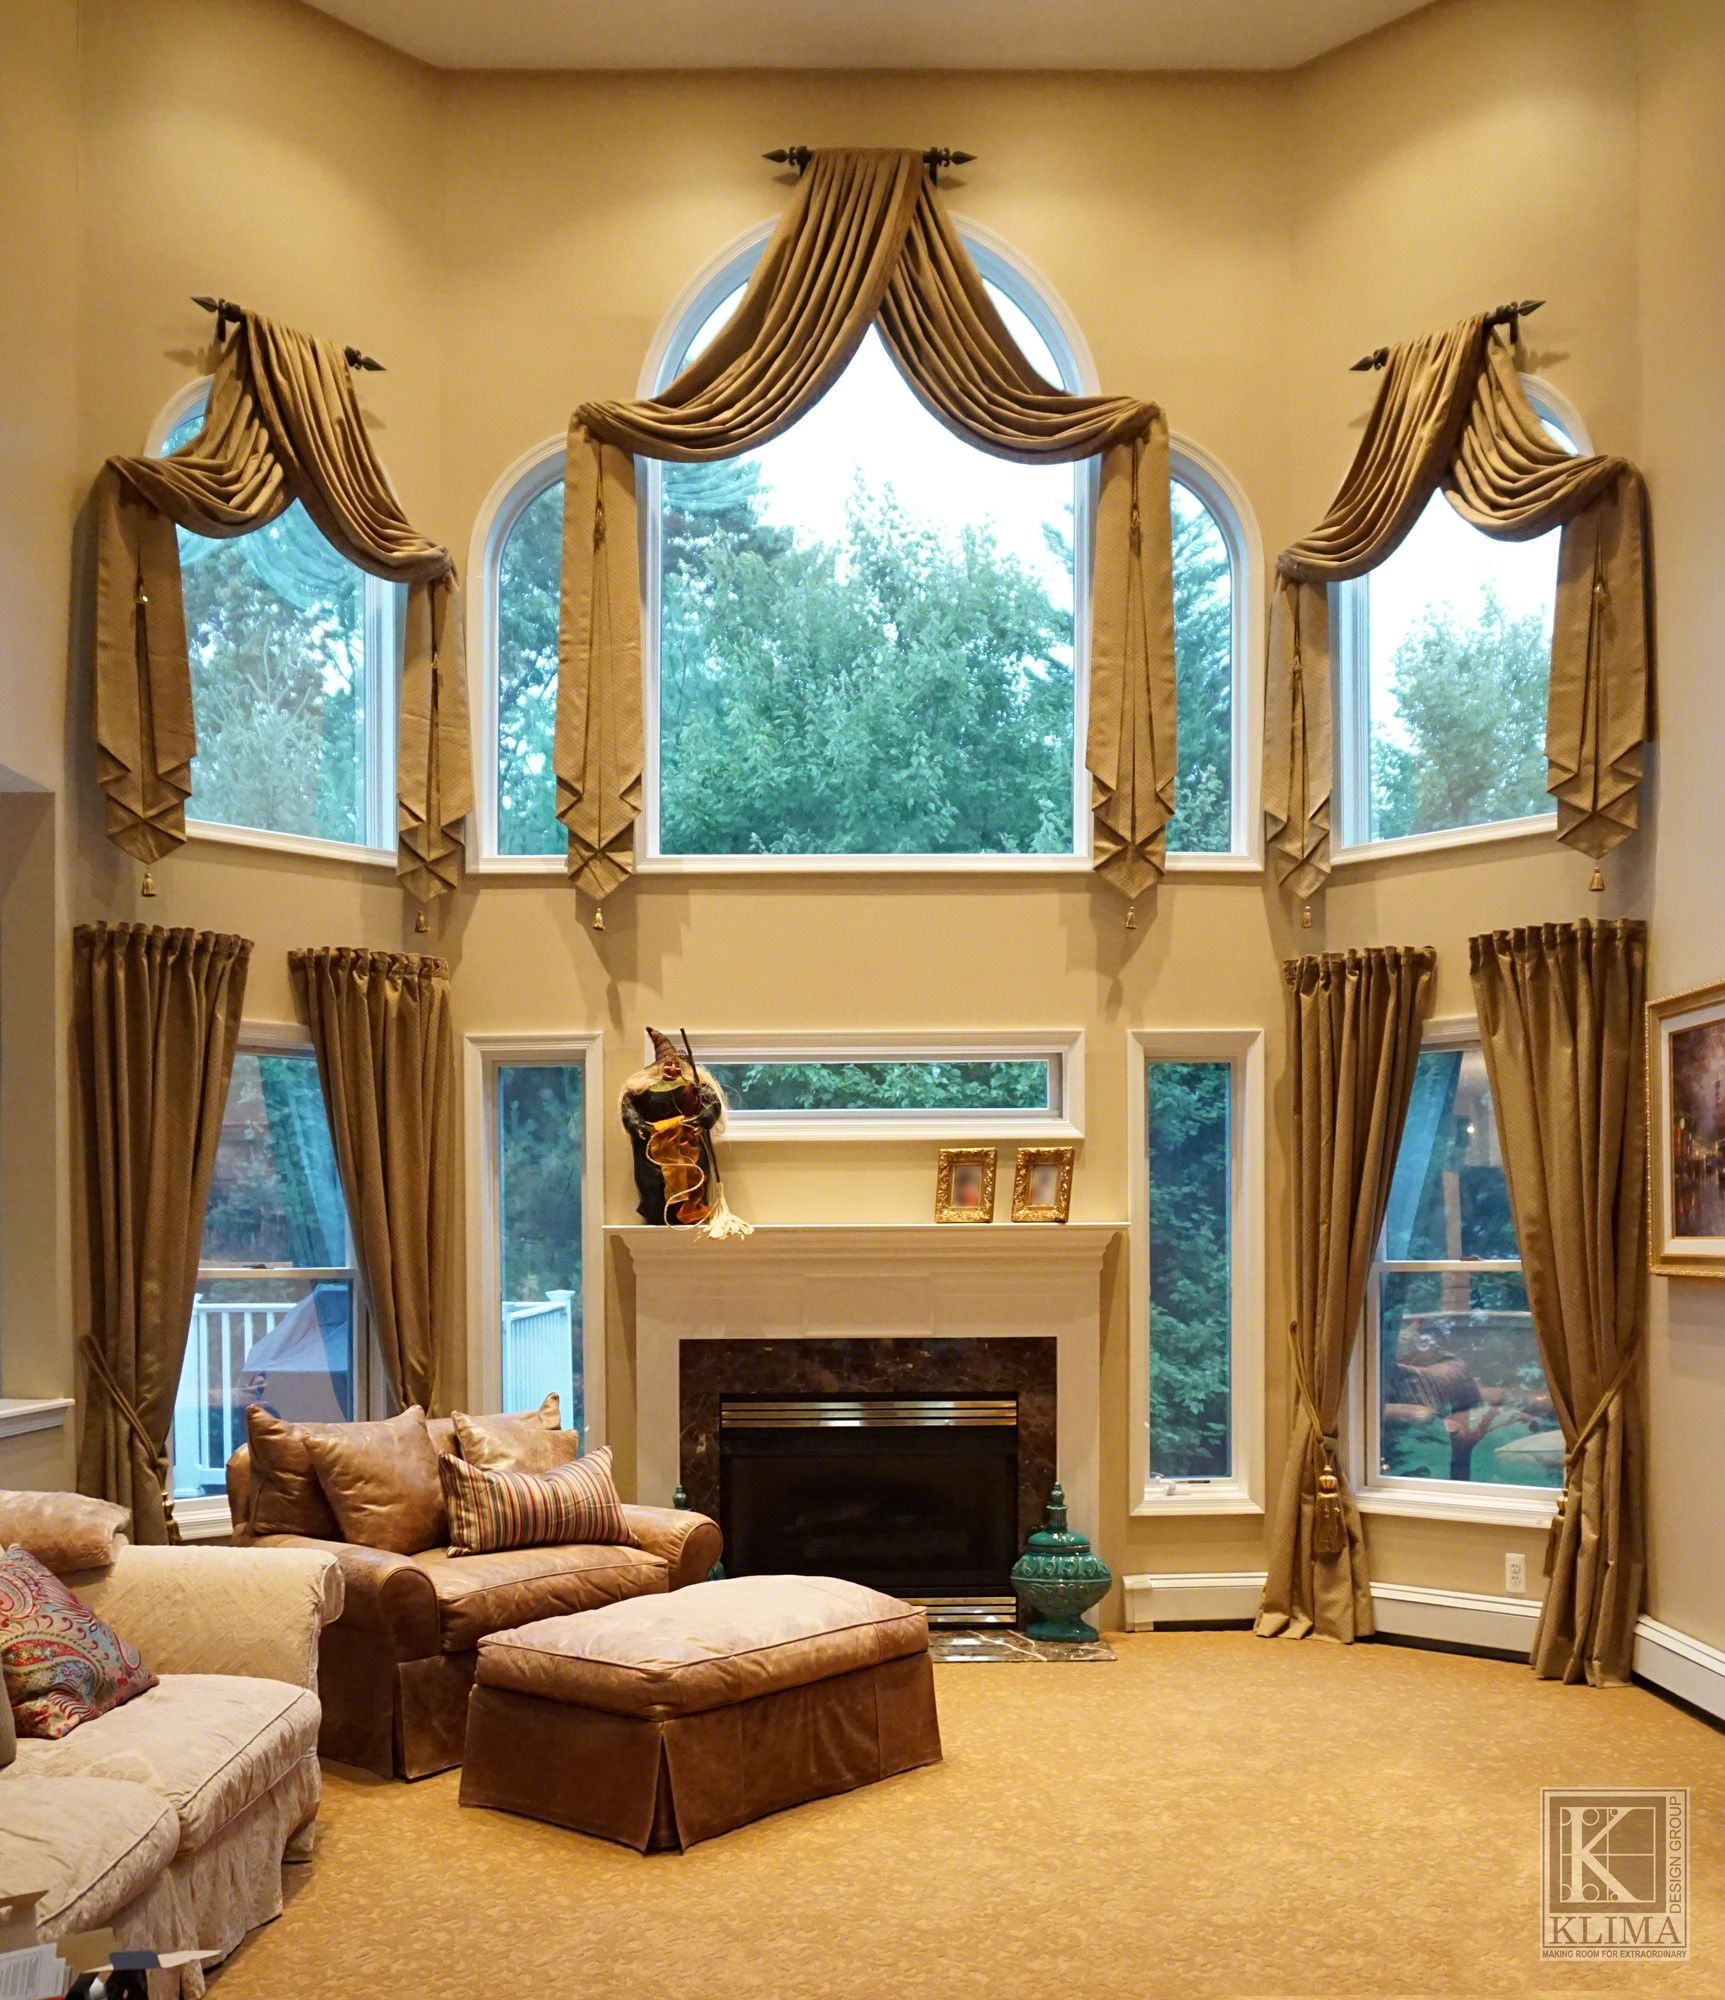 Interior Designer Nj New Jersey Home Decorators Marlboro New Jersey Interior Designers Arched Window Treatments Tall Window Treatments Arched Windows #window #valance #ideas #for #living #room